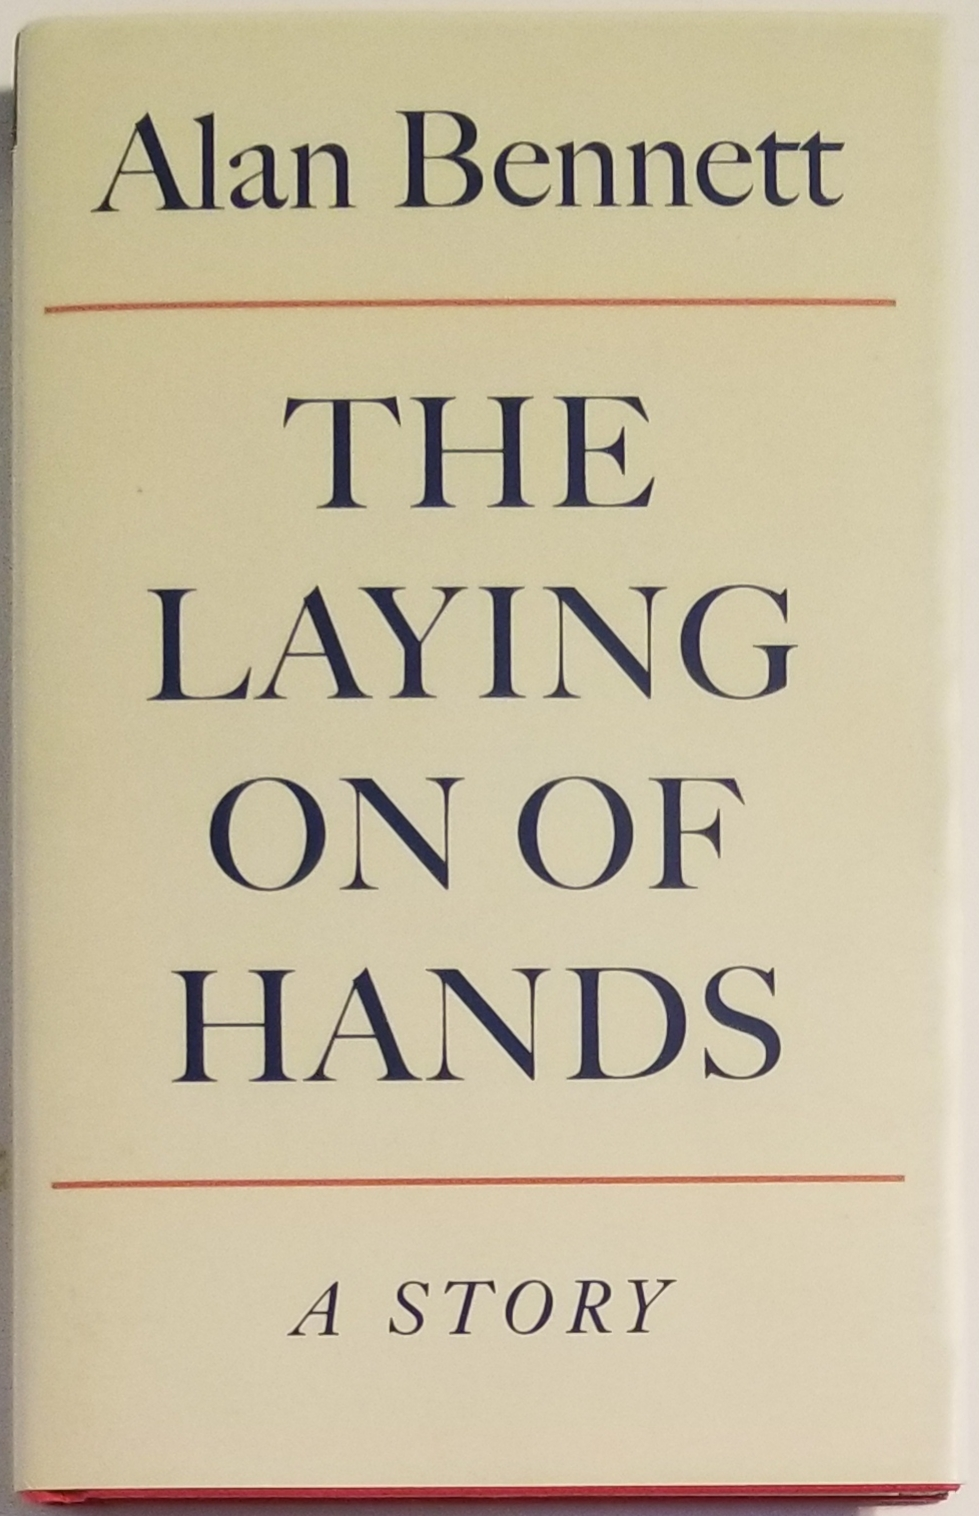 THE LAYING ON OF HANDS. Alan Bennett.